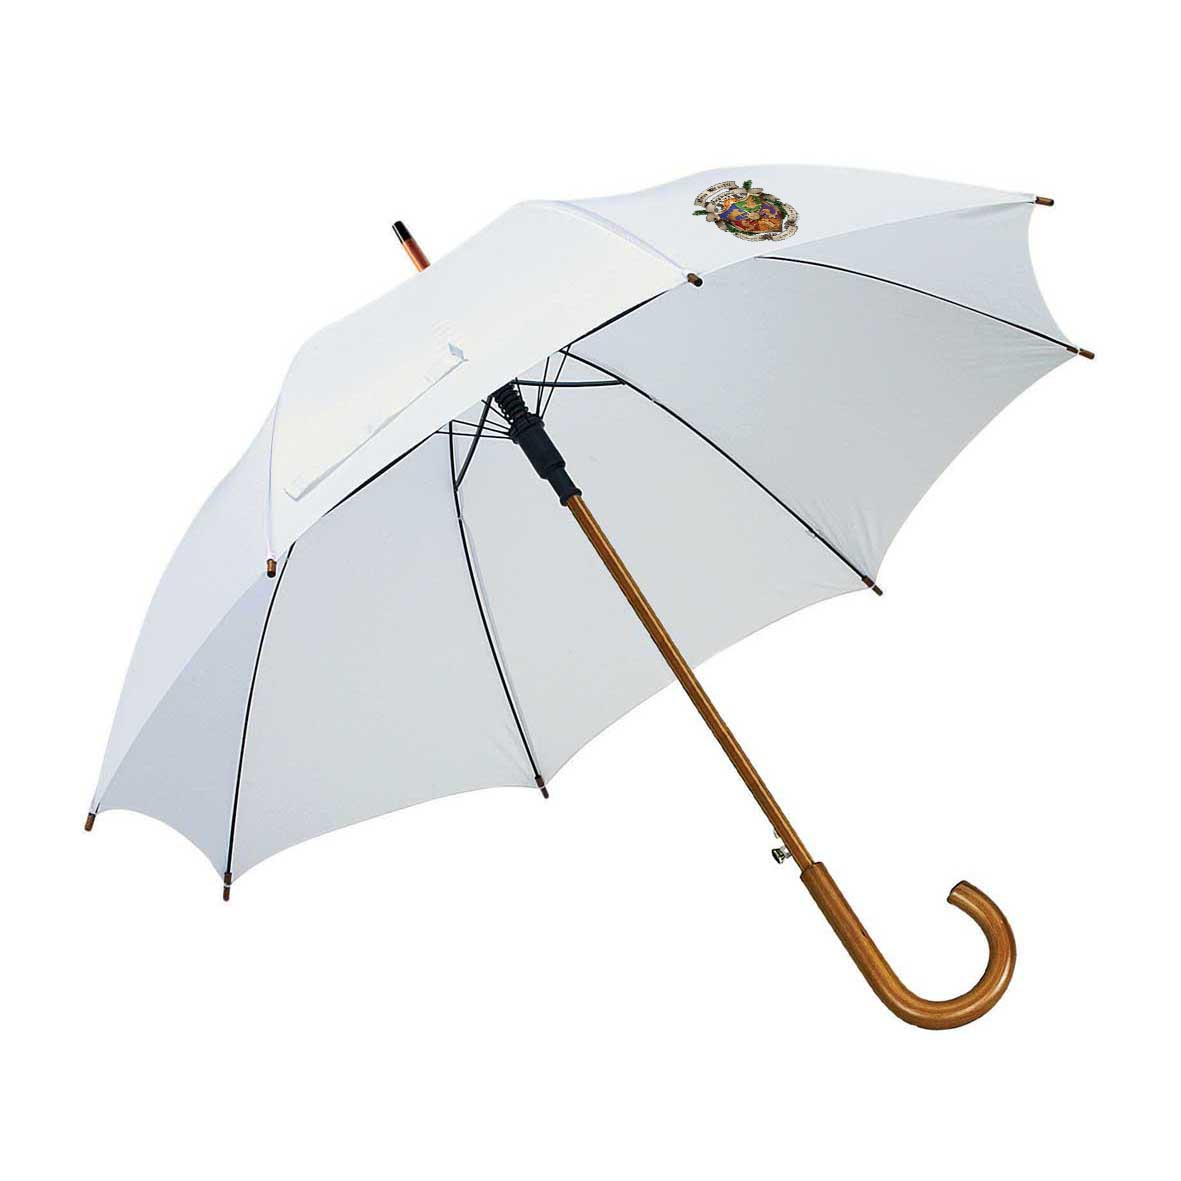 Automatic wooden stick umbrella - White ns-927 w subl